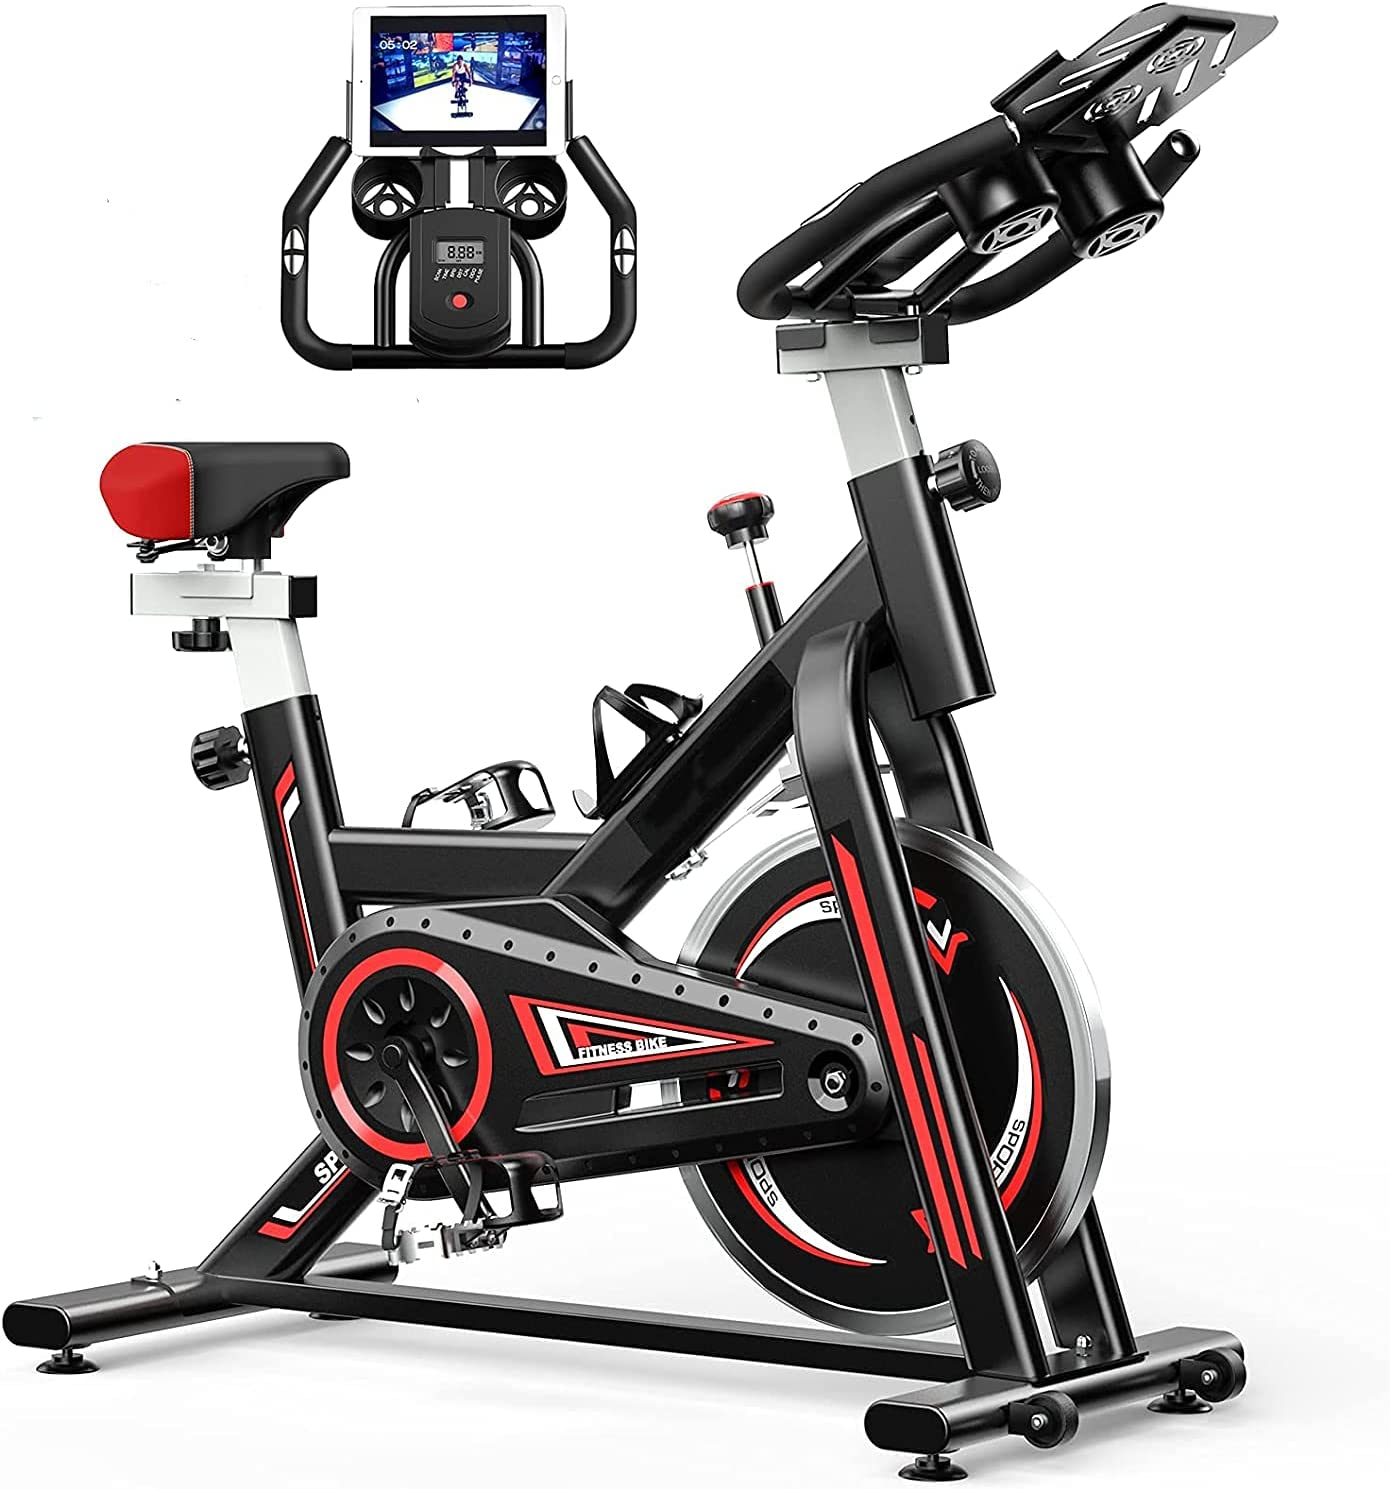 FUNCYIDO Bike for Ranking TOP8 Indoor Riding Steel Monitor Sales with Carbon LCD